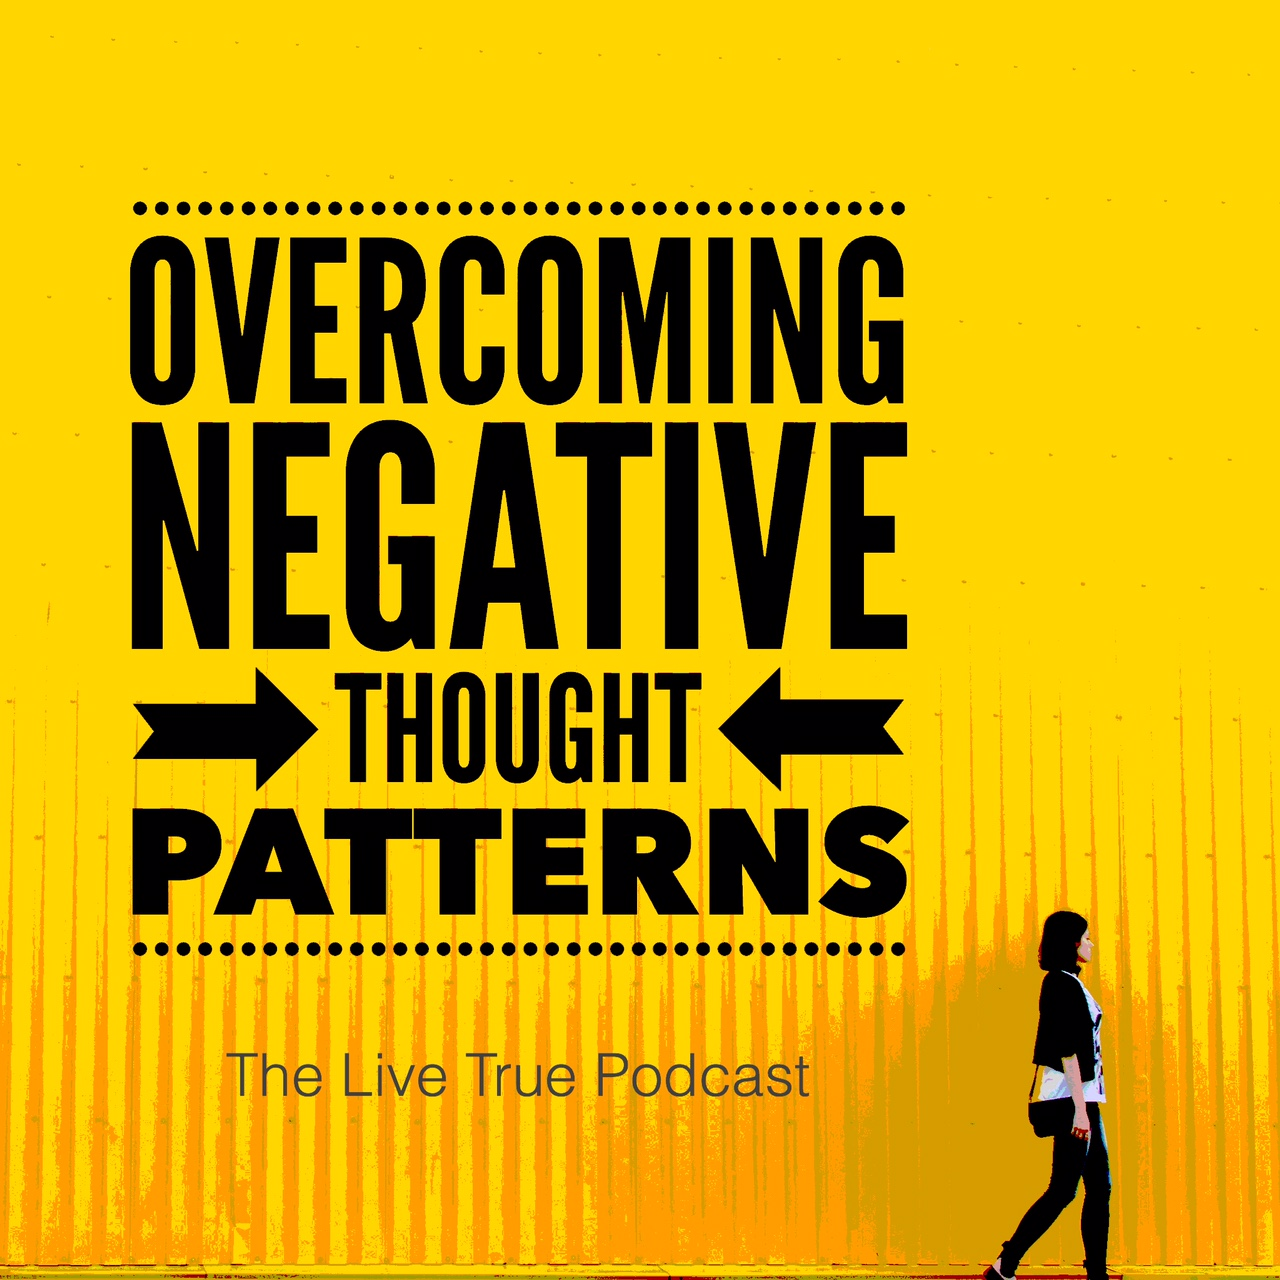 Episode 33 Overcoming Negative Thought Patterns